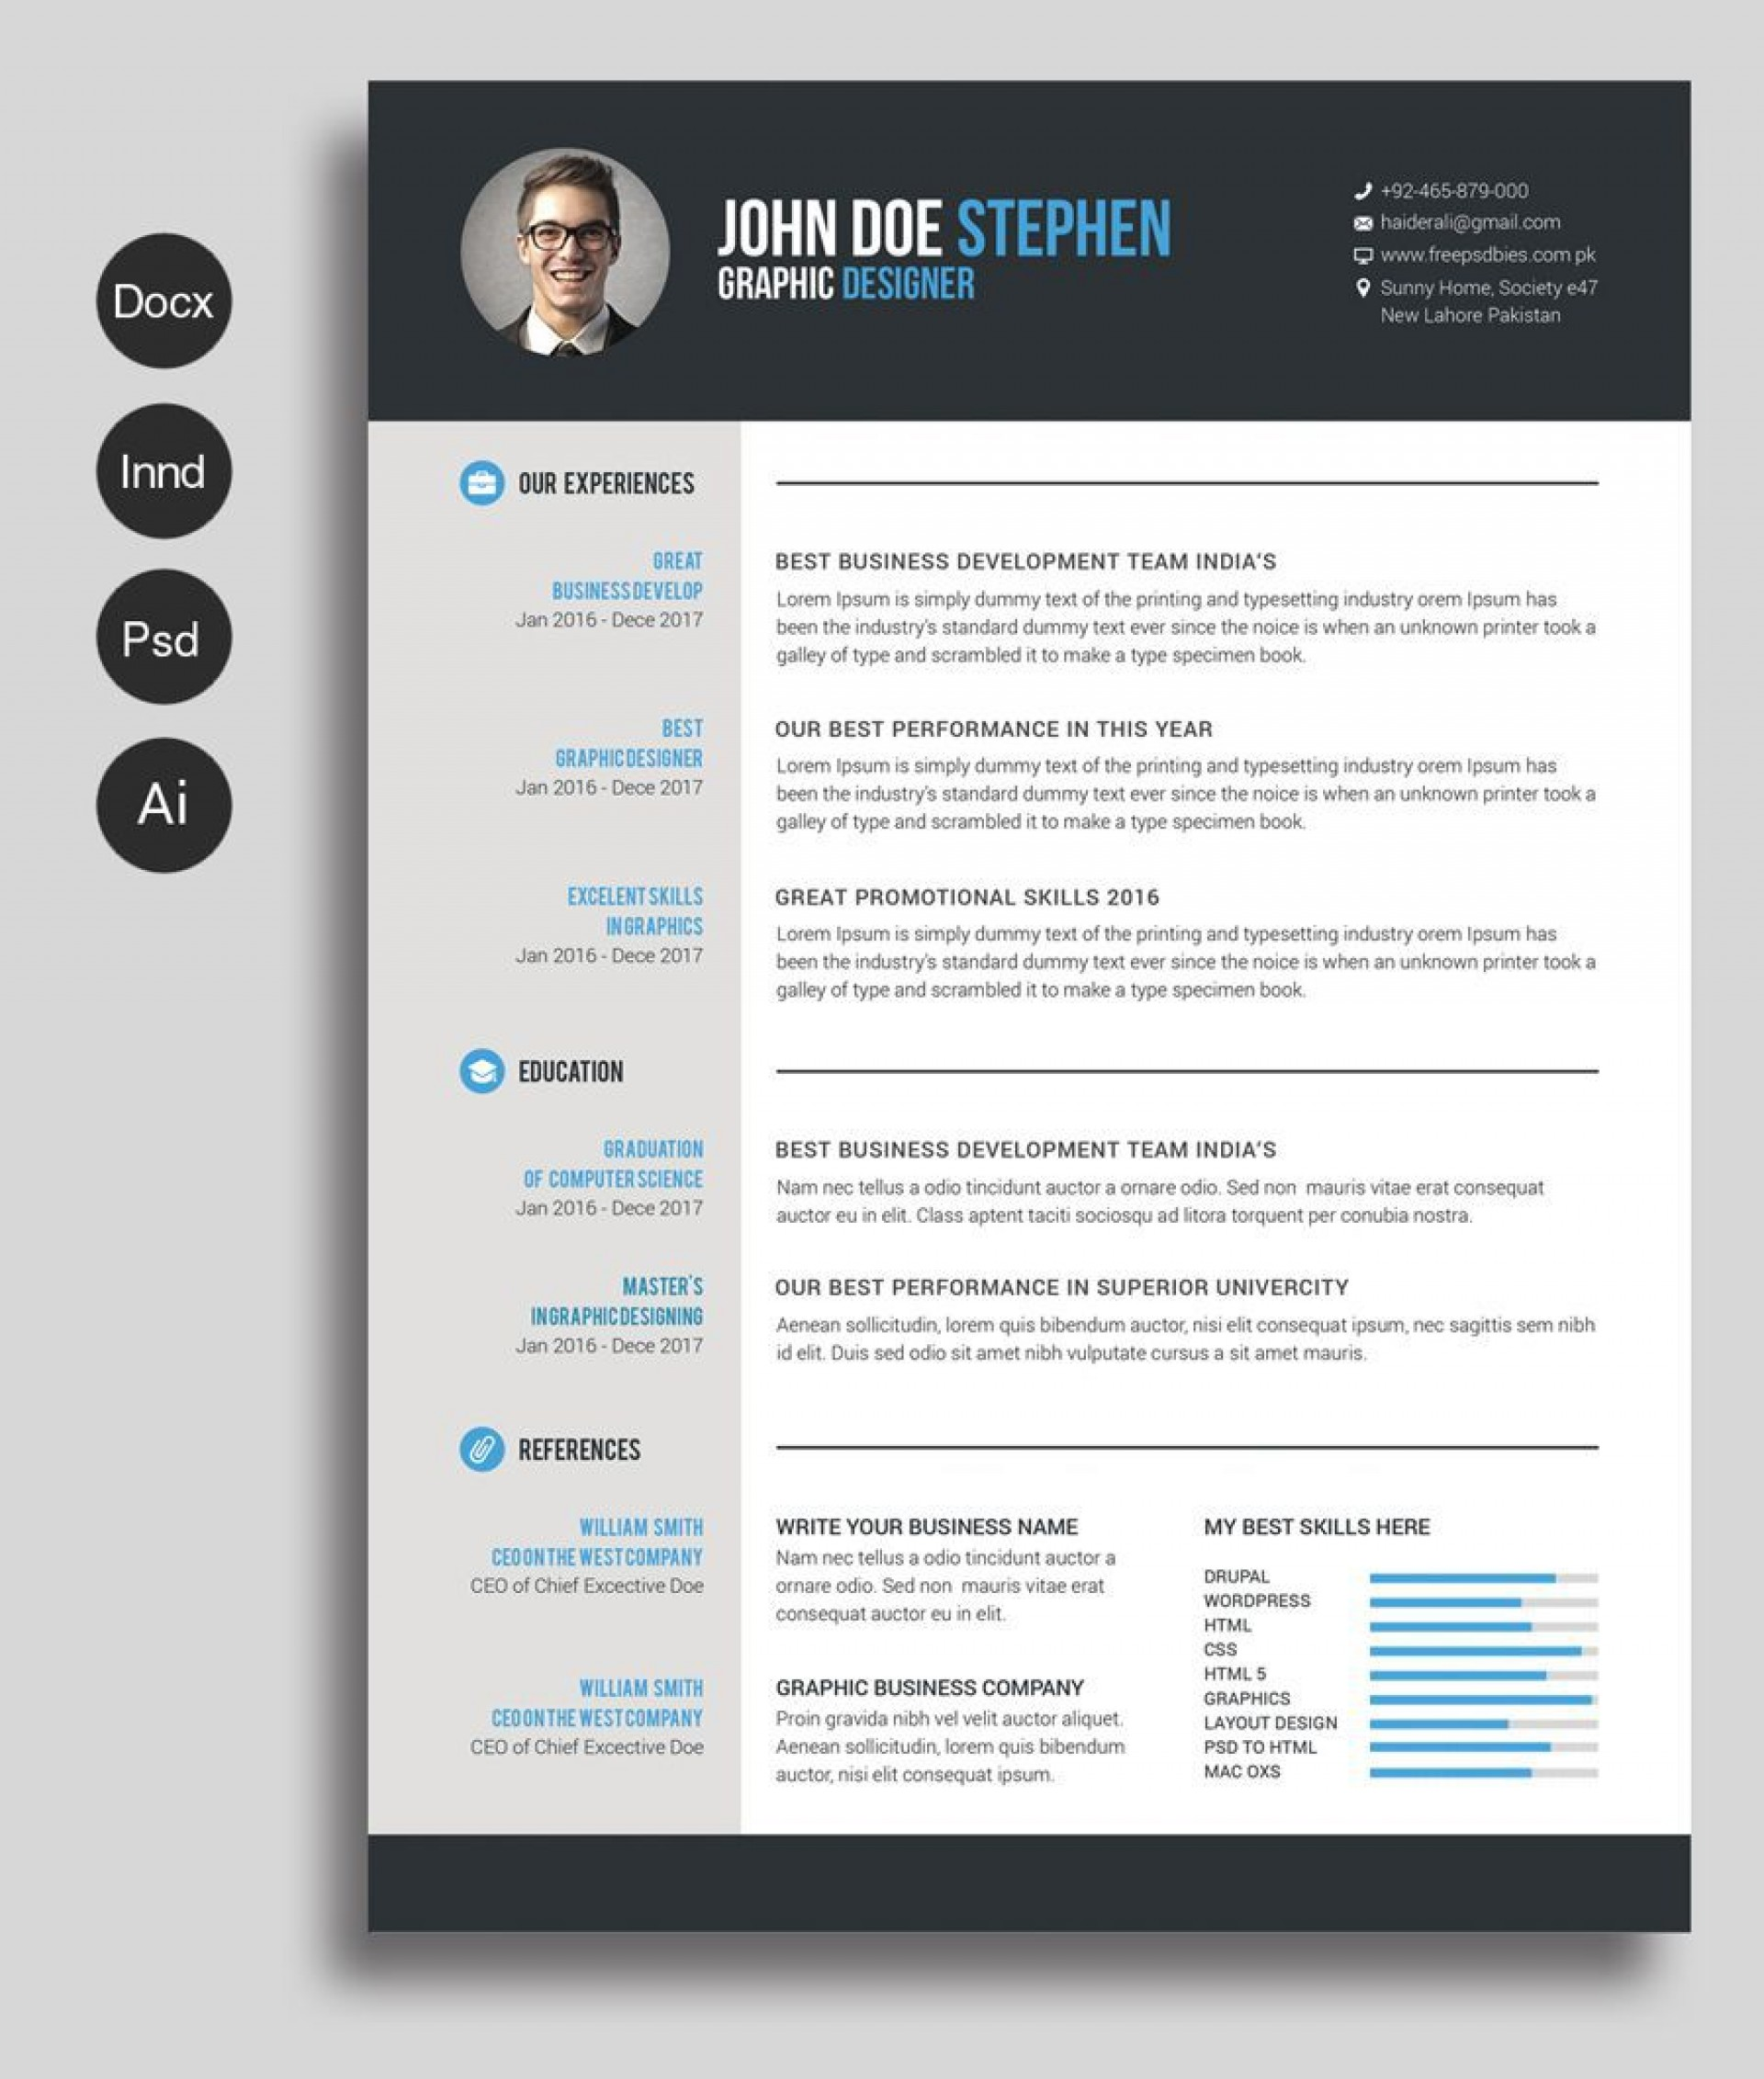 000 Phenomenal Resume Template M Word Free Highest Clarity  Modern Microsoft Download 2010 Cv With Picture1920